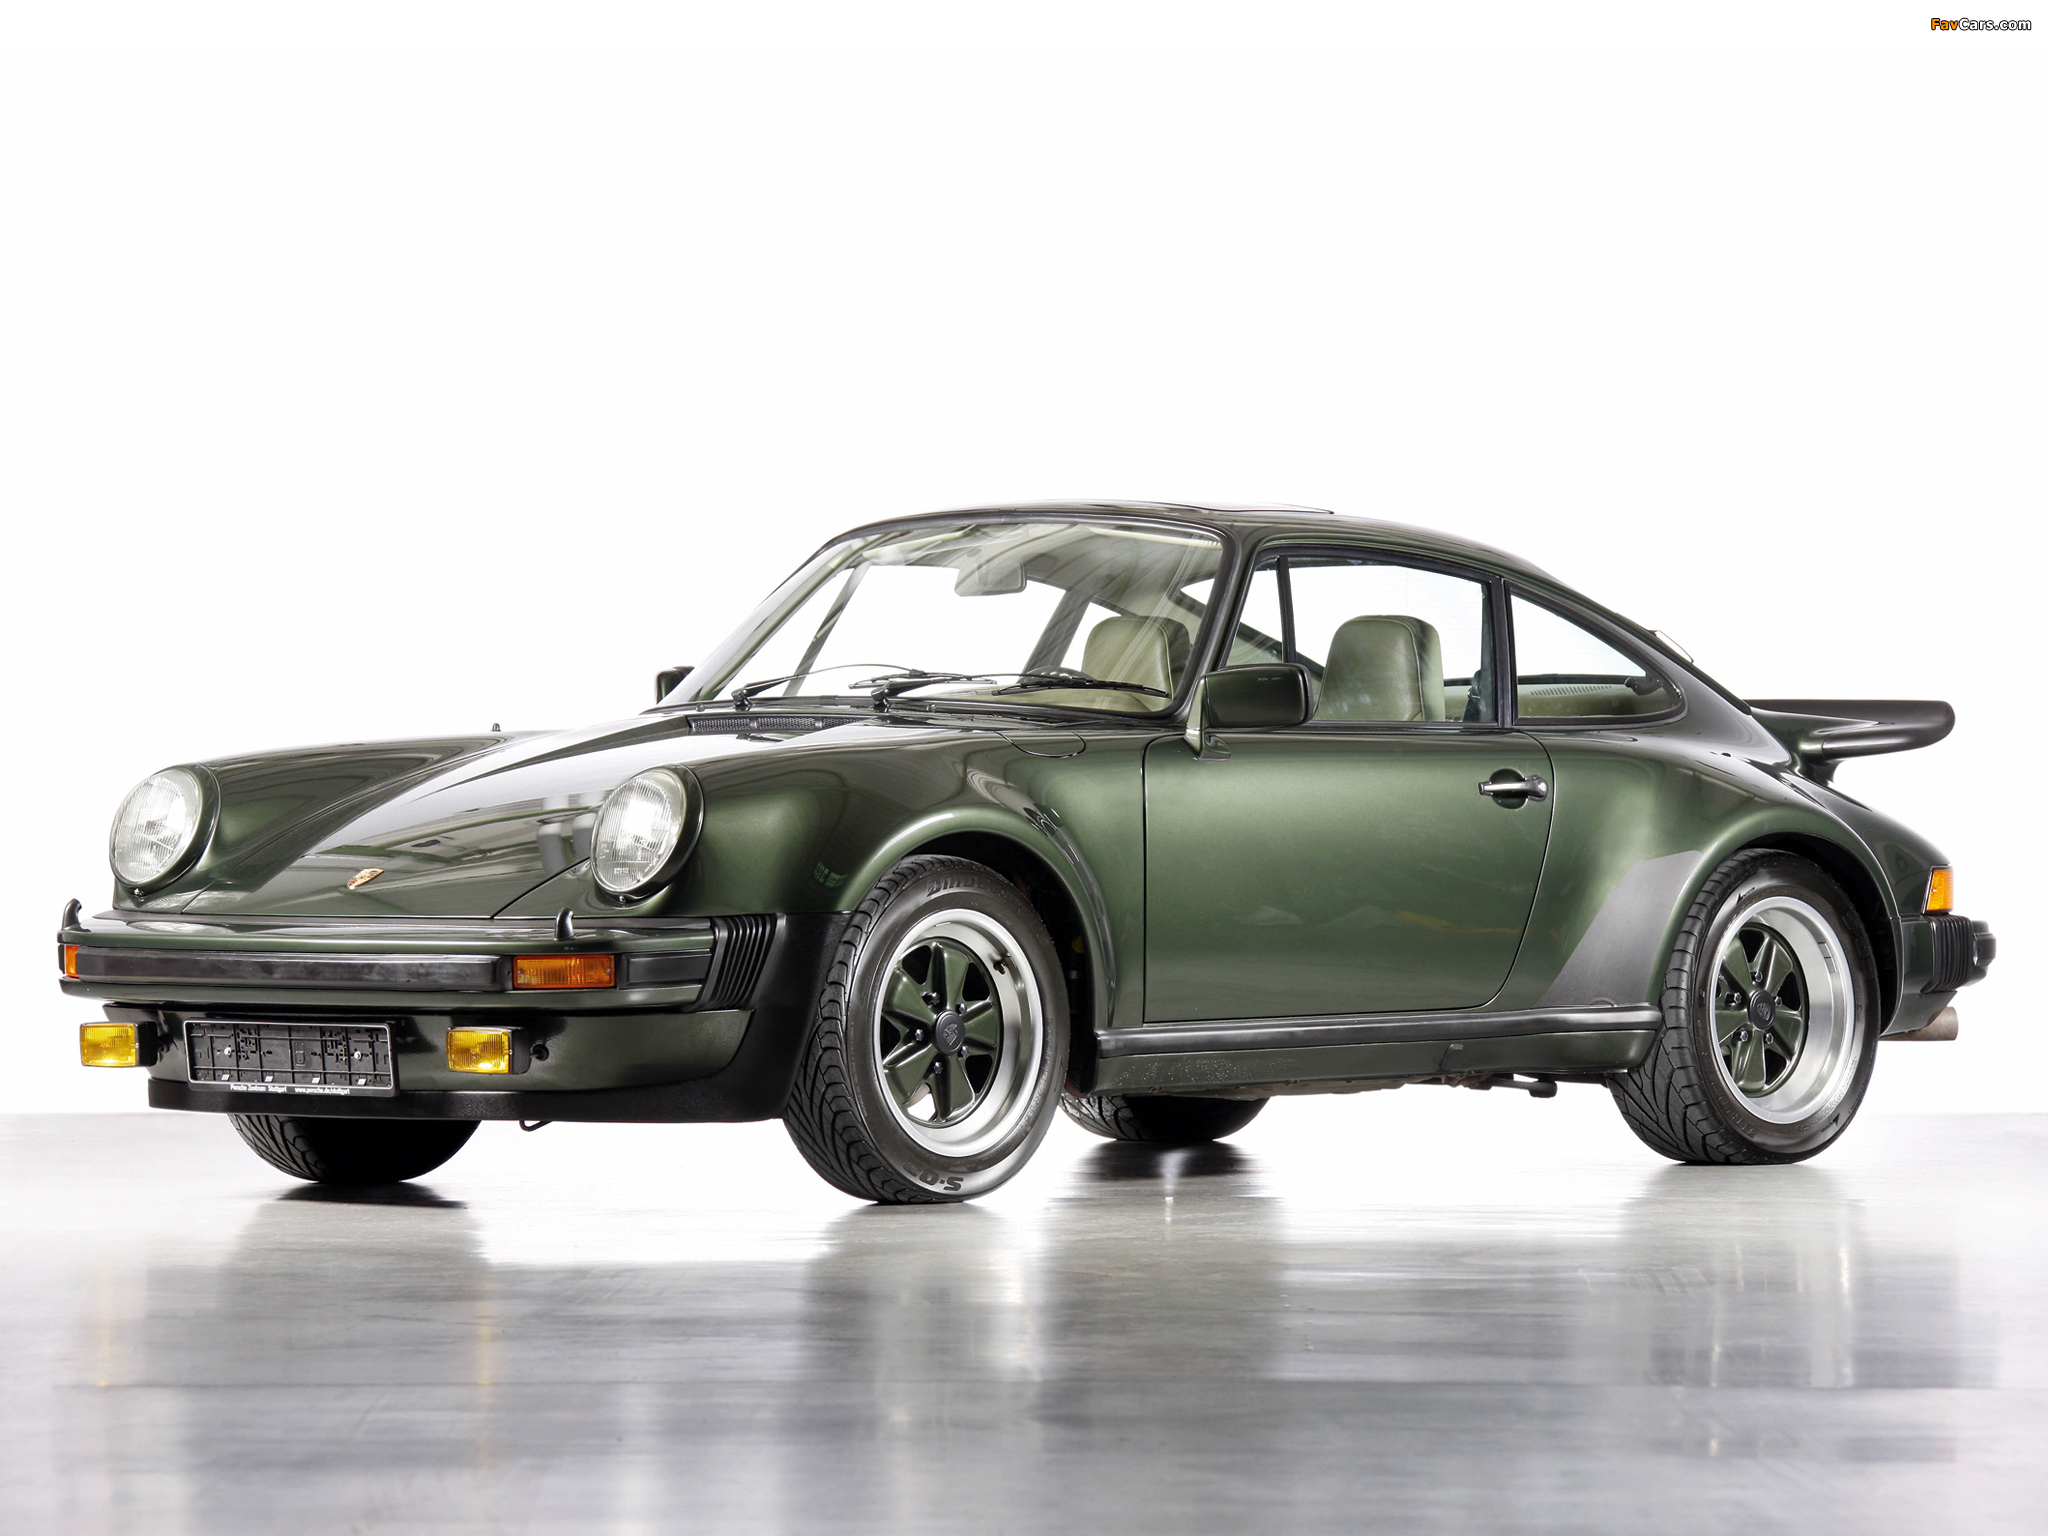 1975 porsche 911 information and photos momentcar. Black Bedroom Furniture Sets. Home Design Ideas